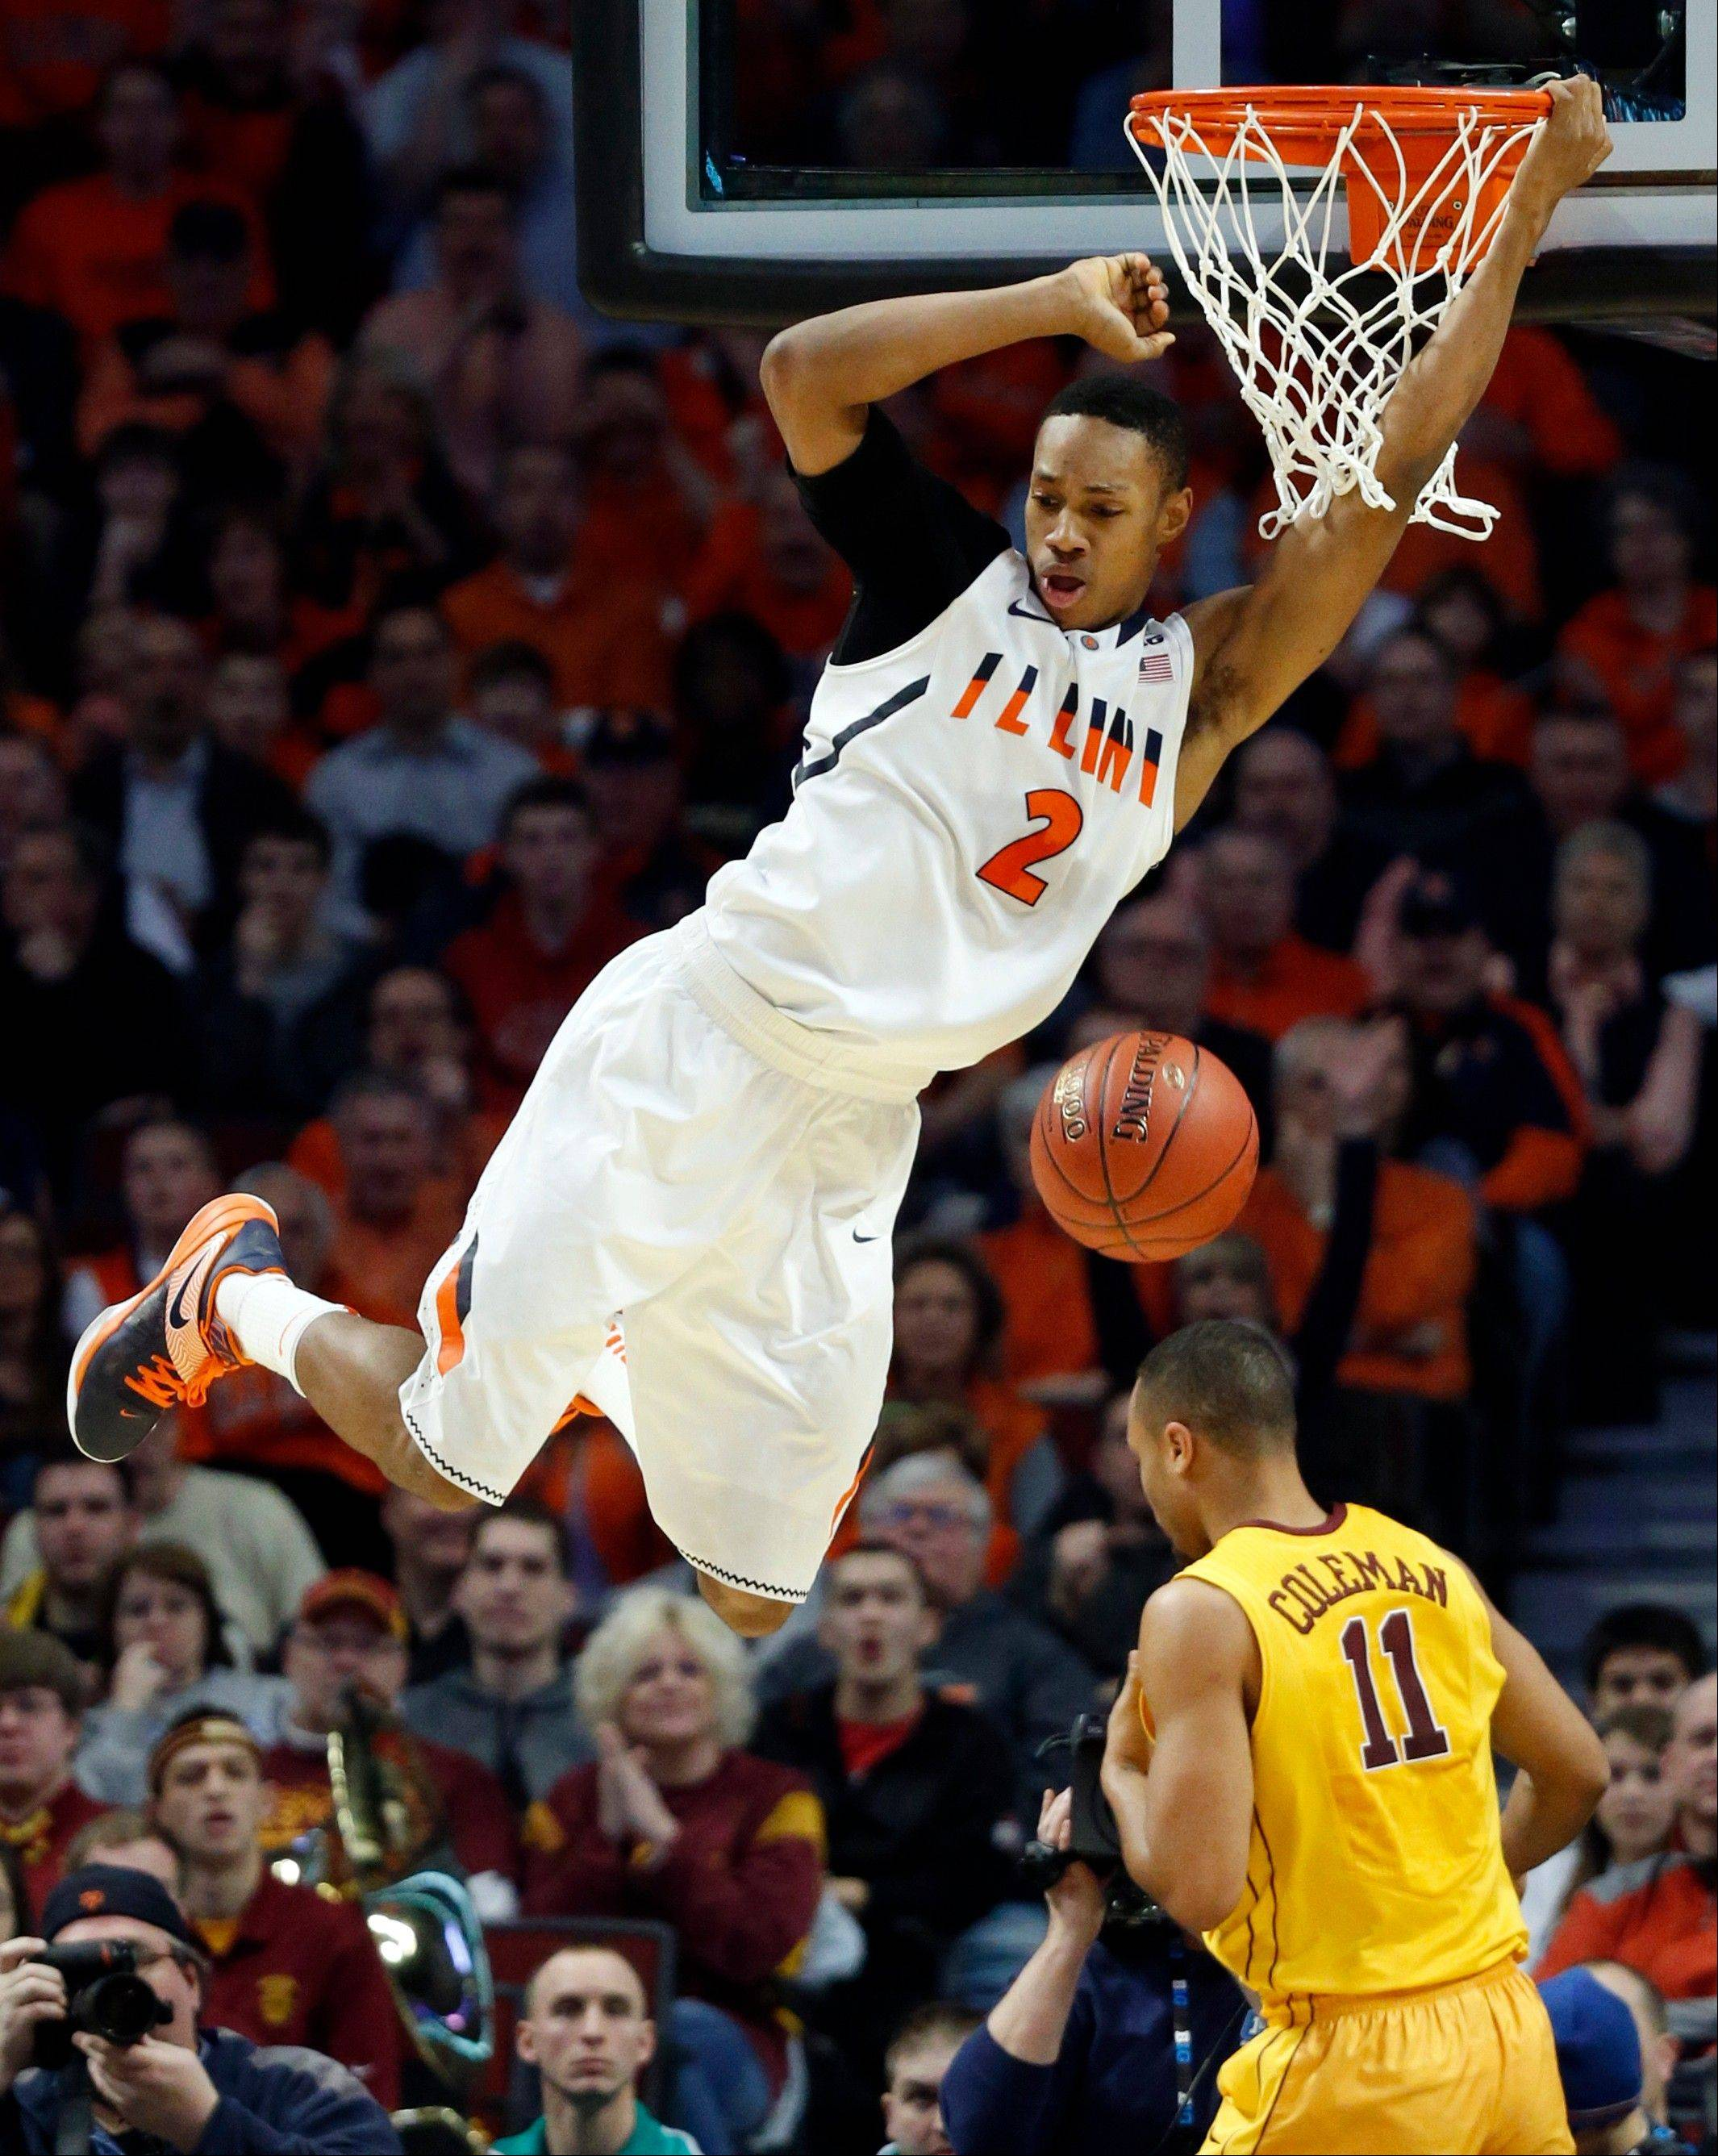 Illinois' Joseph Bertrand (2) dunks over Minnesota's Joe Coleman (11) during the first half.